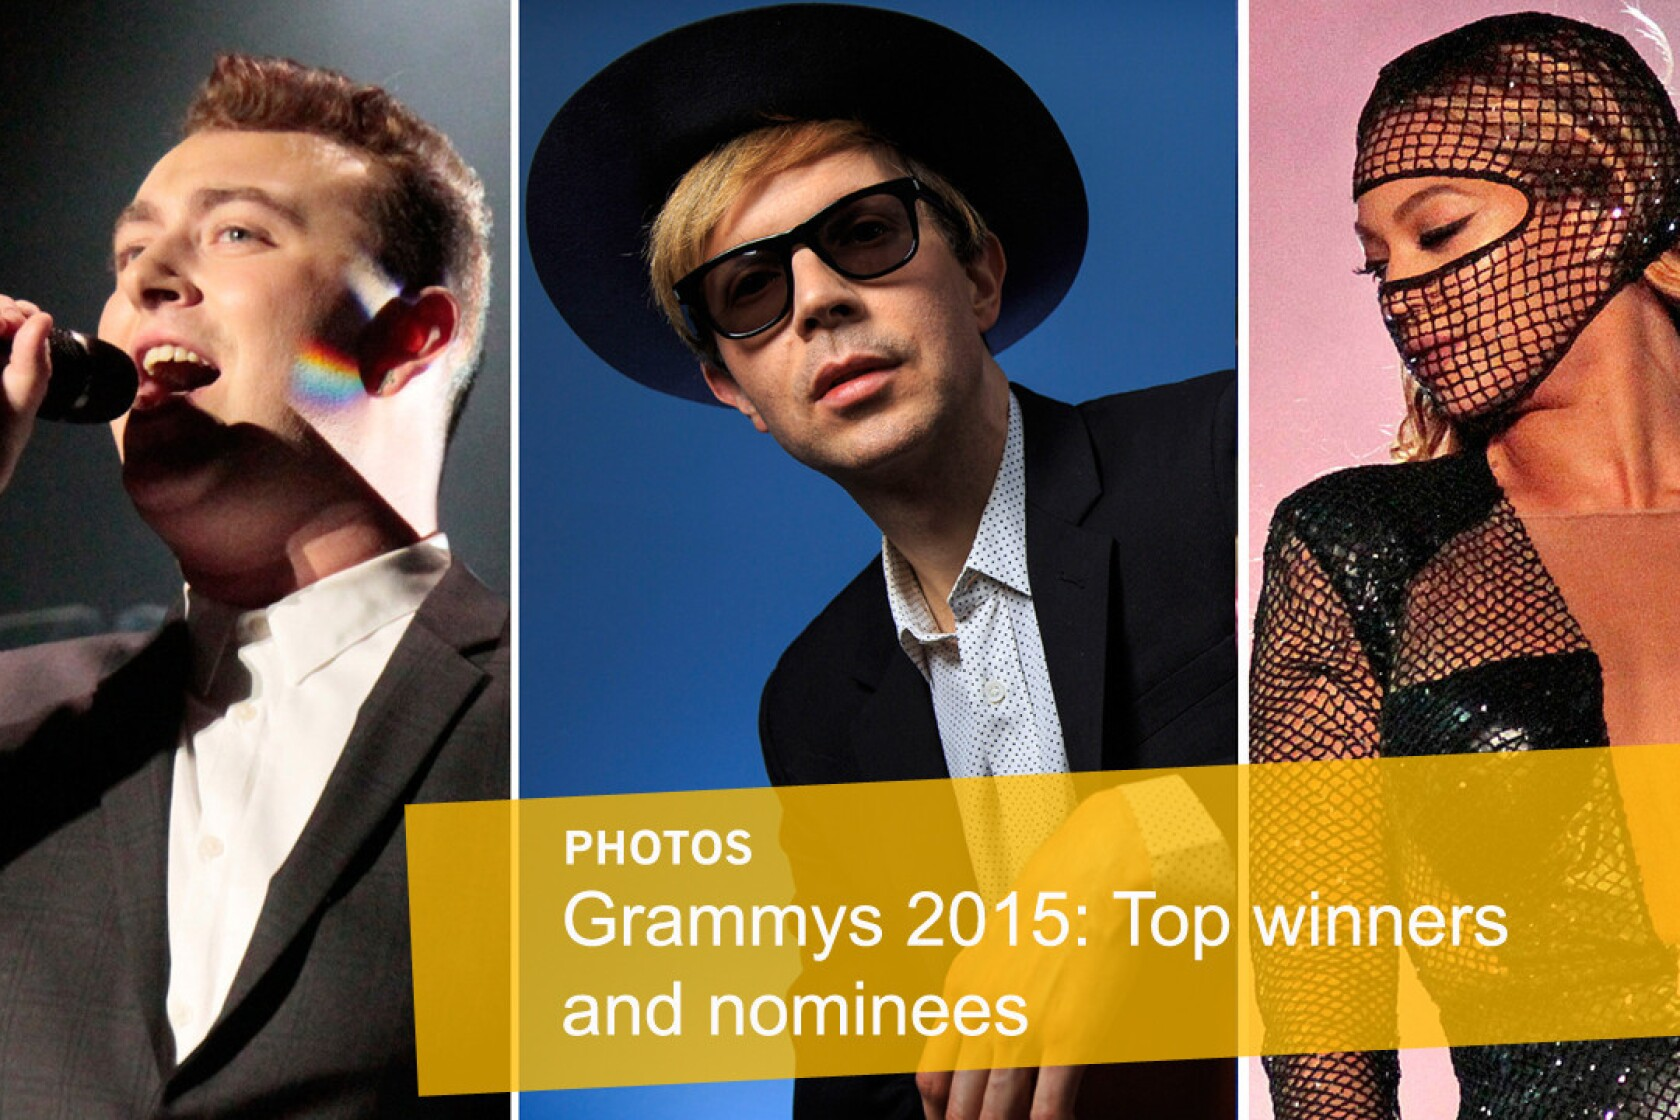 Grammys 2015: Complete list of winners and nominees - Los